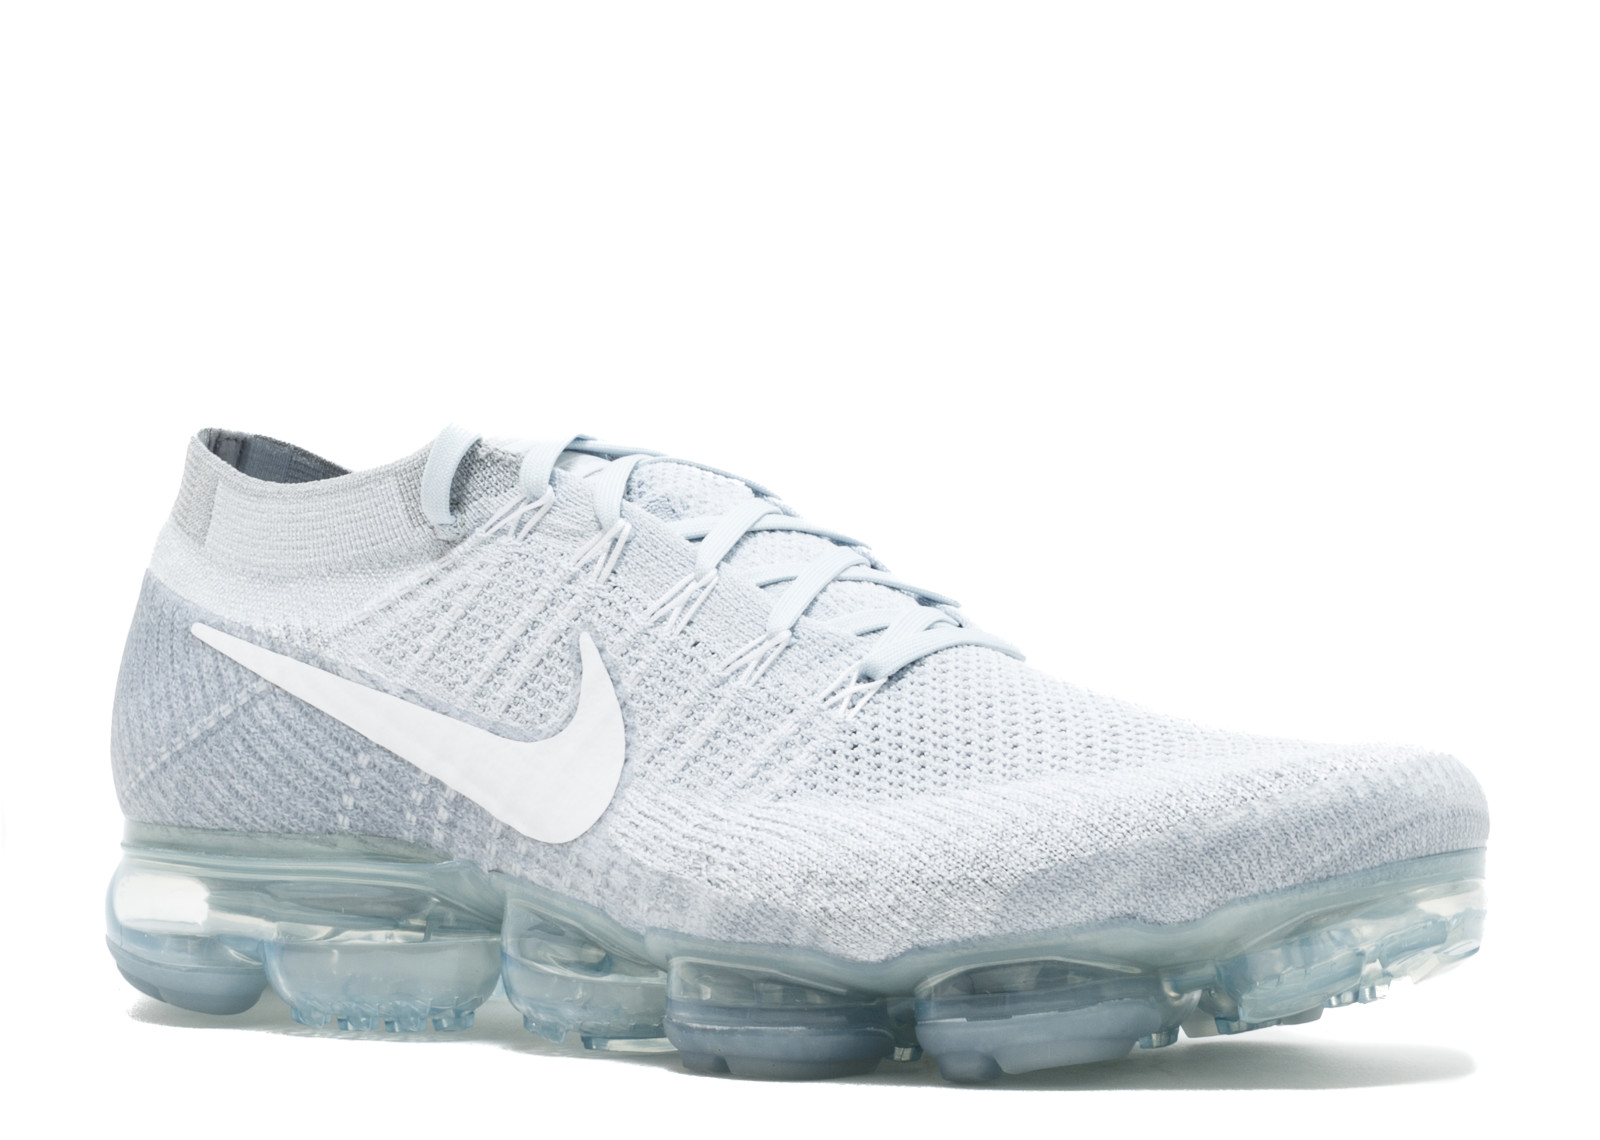 3be79362e Nike Air Vapormax Flyknit  Pure Platinum  - 849558-004 - Size 11.5 ...